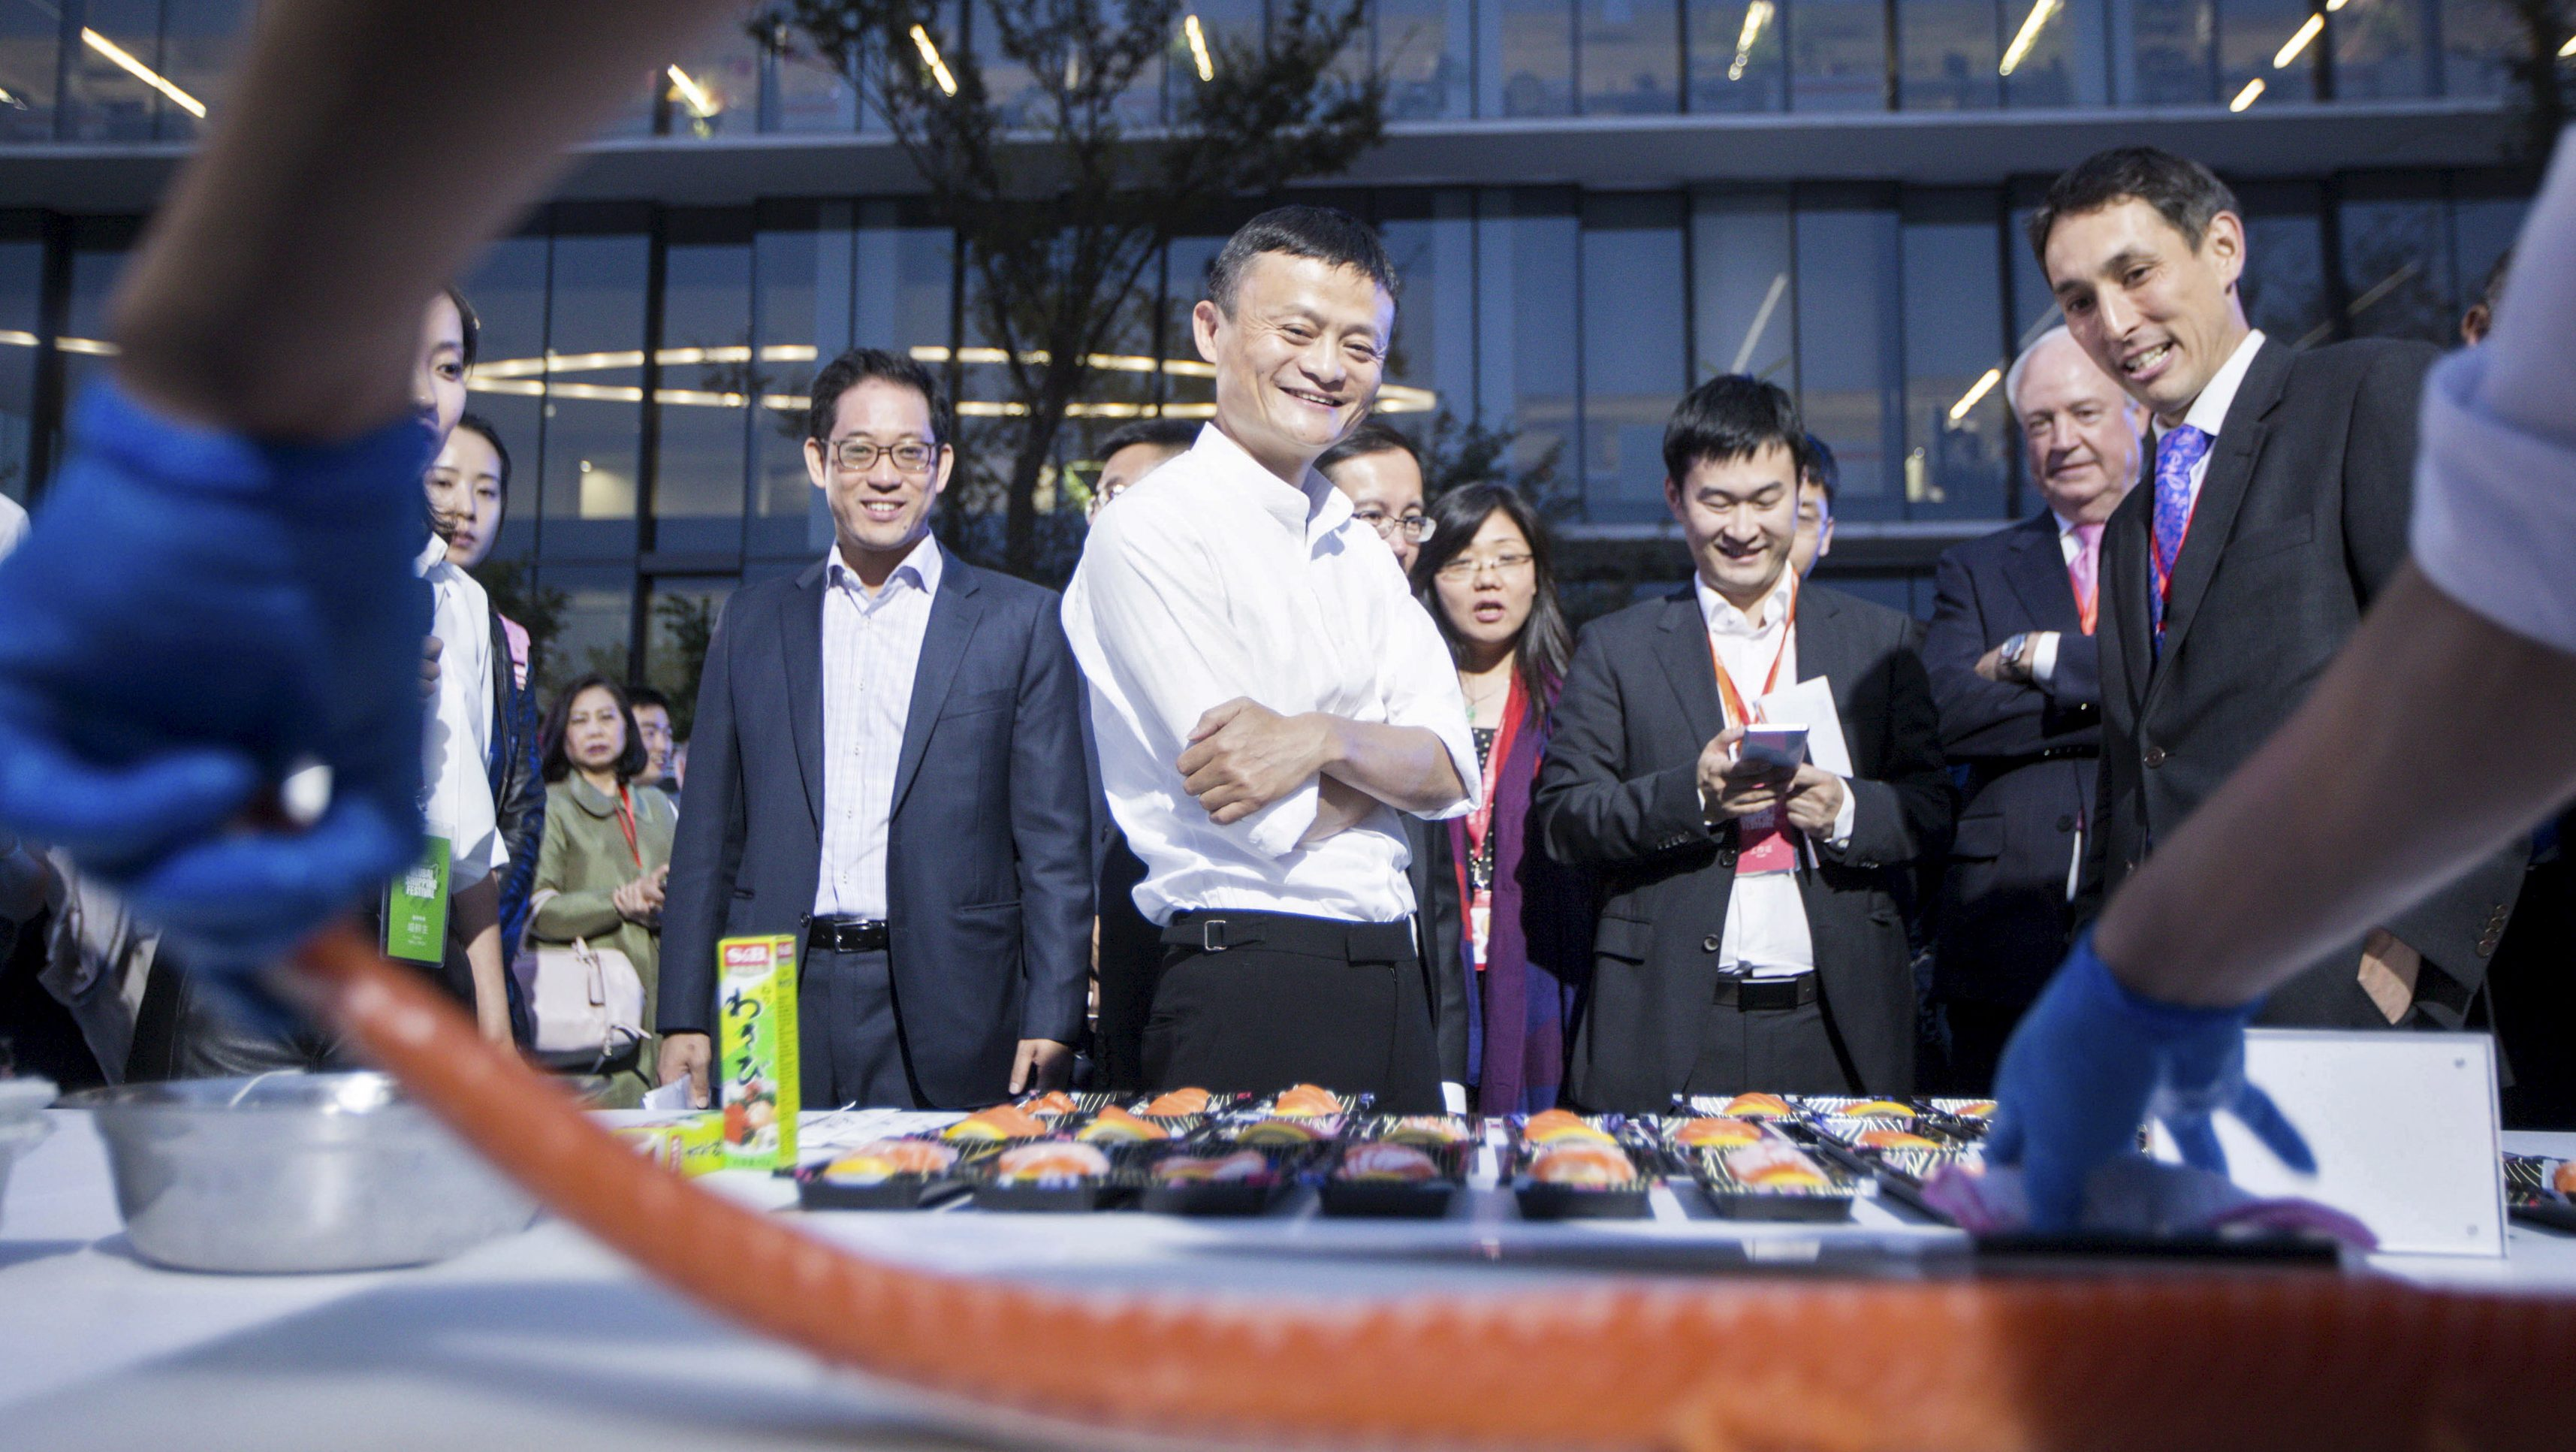 Alibaba Group's executive chairman Jack Ma (C) looks on as a chef prepares to slice salmon at a display area for fresh food ingredient vendors, who recently signed a cooperation agreement with Alibaba's Tmall, after the launch event of Tmall 11.11 Global Shopping Festival, at the company's headquarters in Hangzhou, Zhejiang province, China, October 13, 2015. REUTERS/Stringer CHINA OUT. NO COMMERCIAL OR EDITORIAL SALES IN CHINA. - RTS49DX